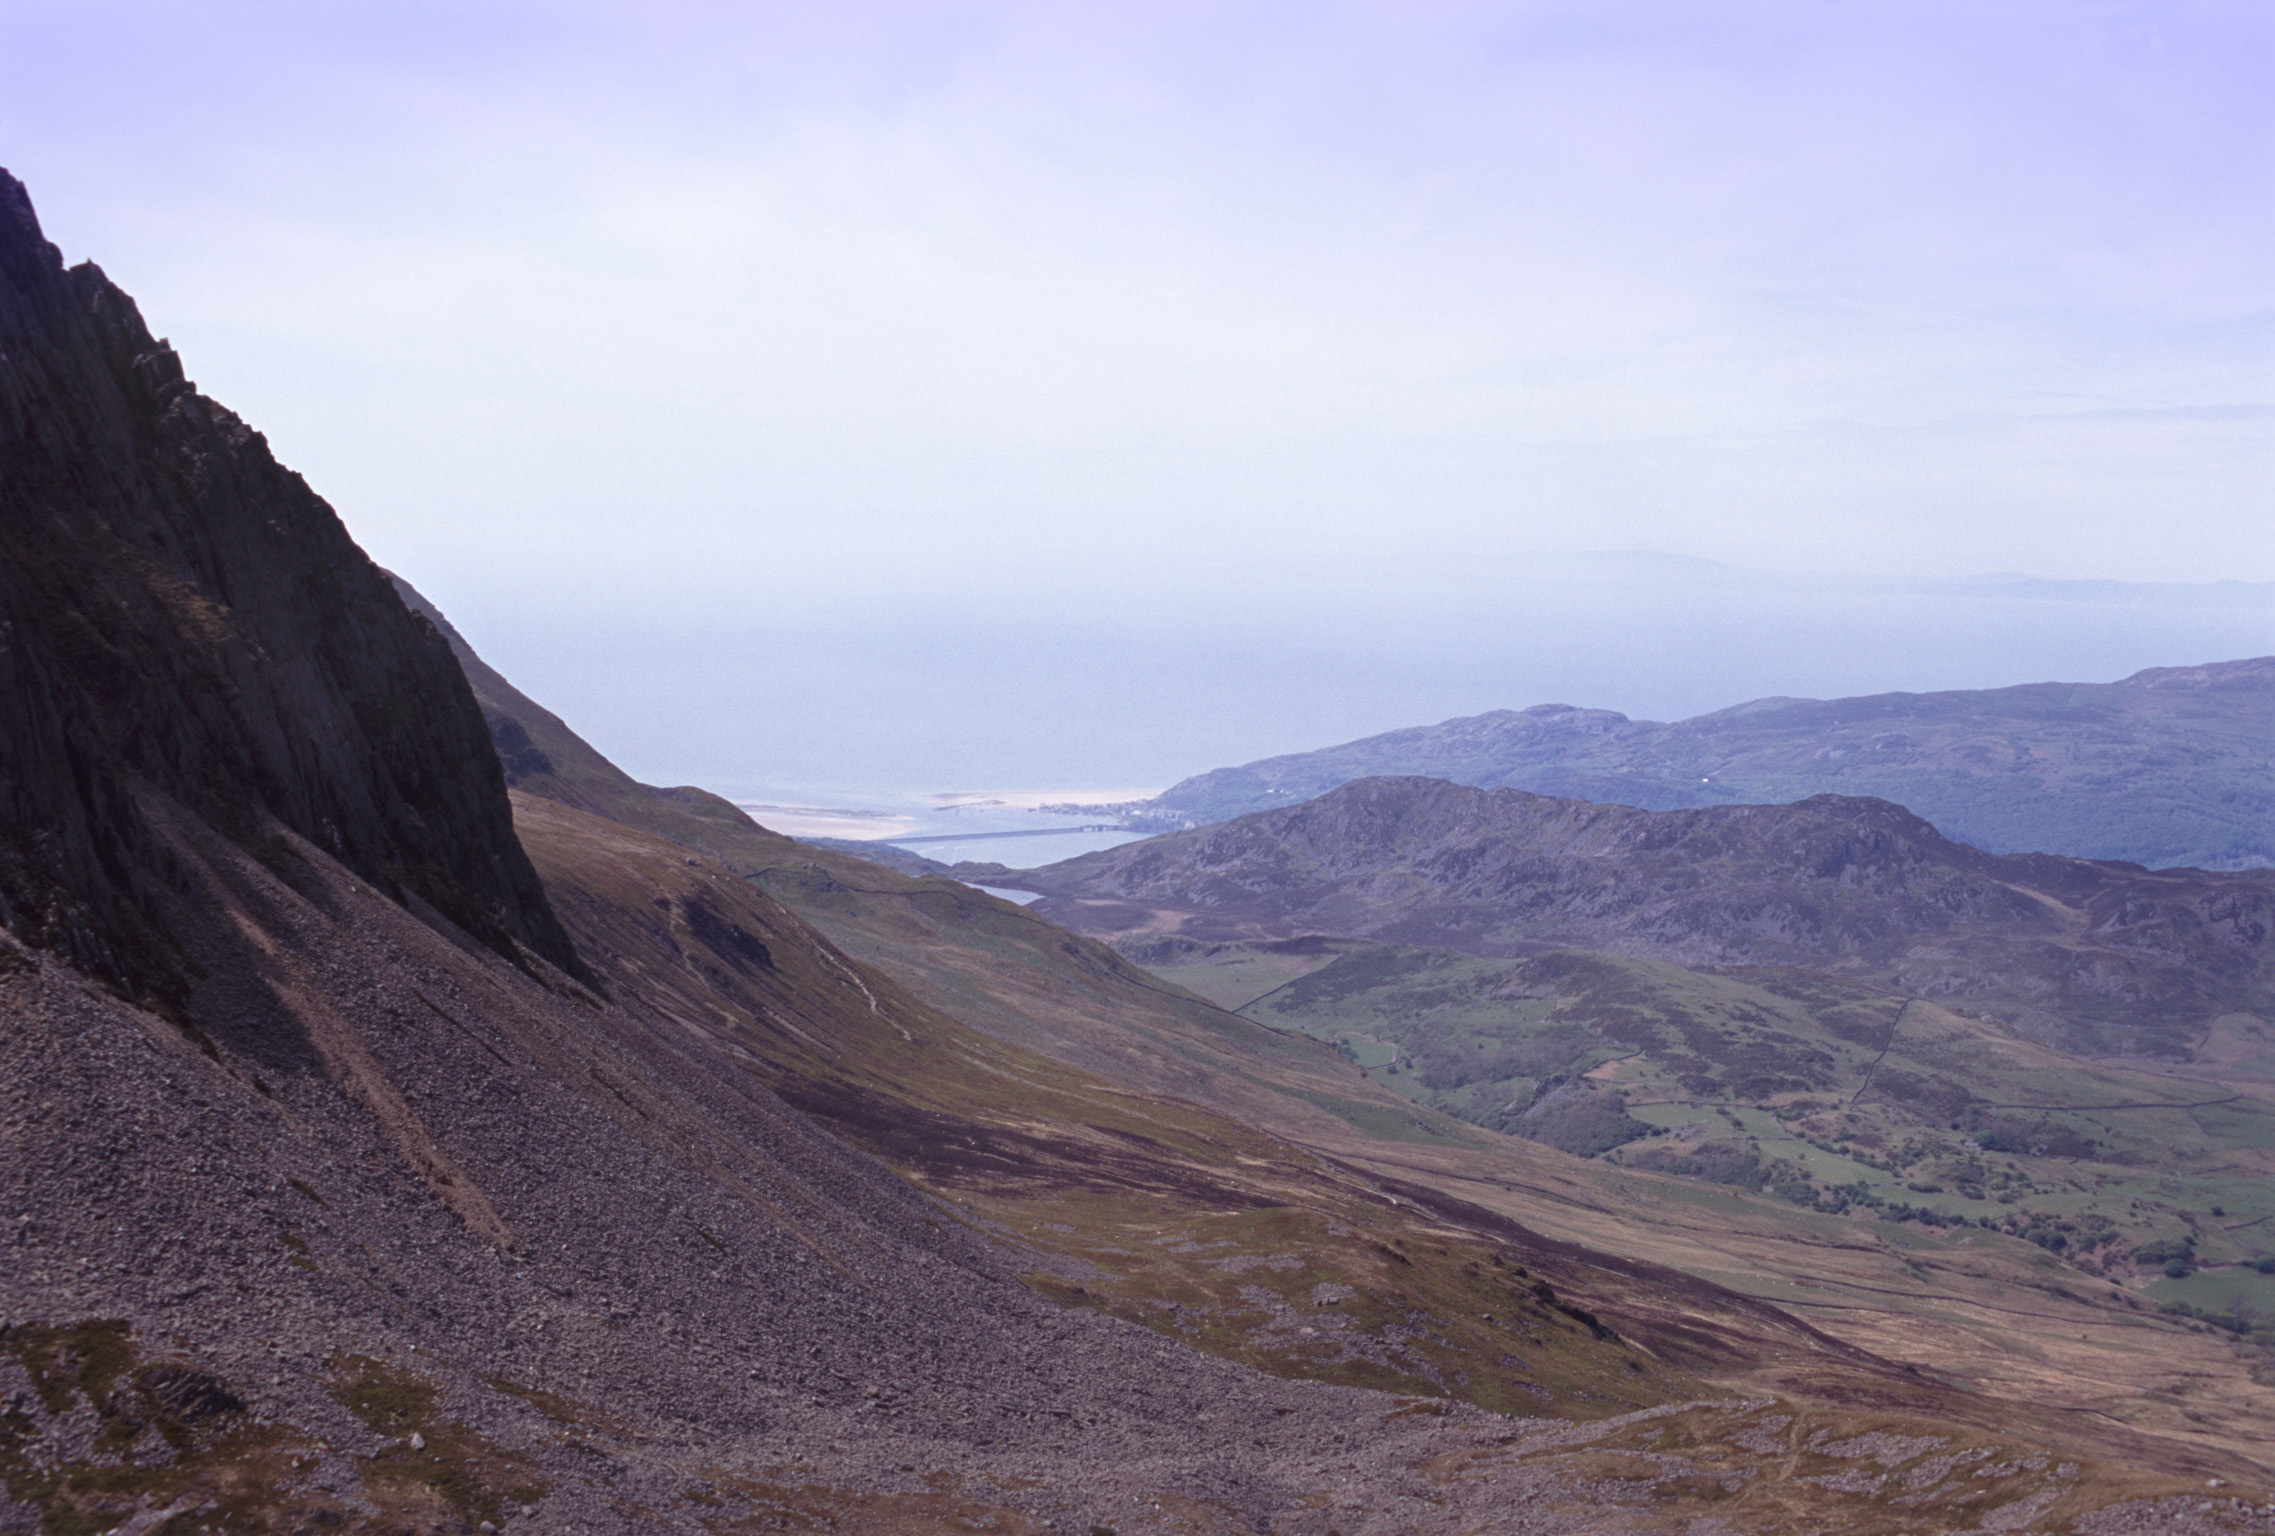 View from Cadair Idris, a mountain in Gwynedd, Wales down towards the coast to Barmouth